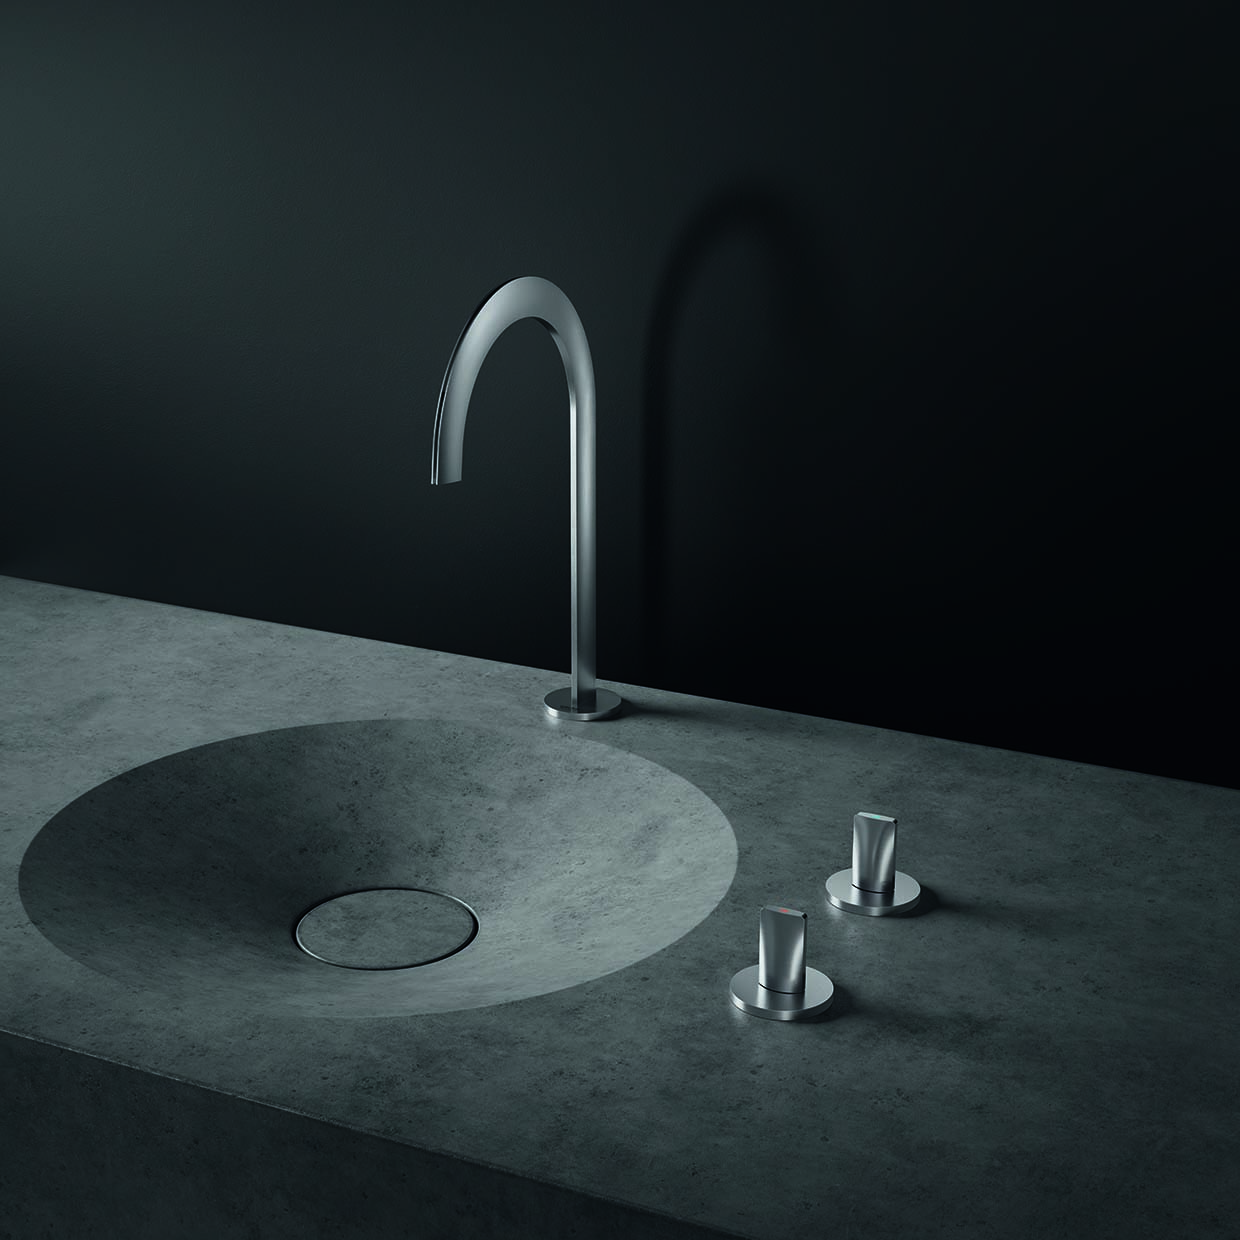 Miscelatore Grohe vince l'Archiproducts Design Awards 2019